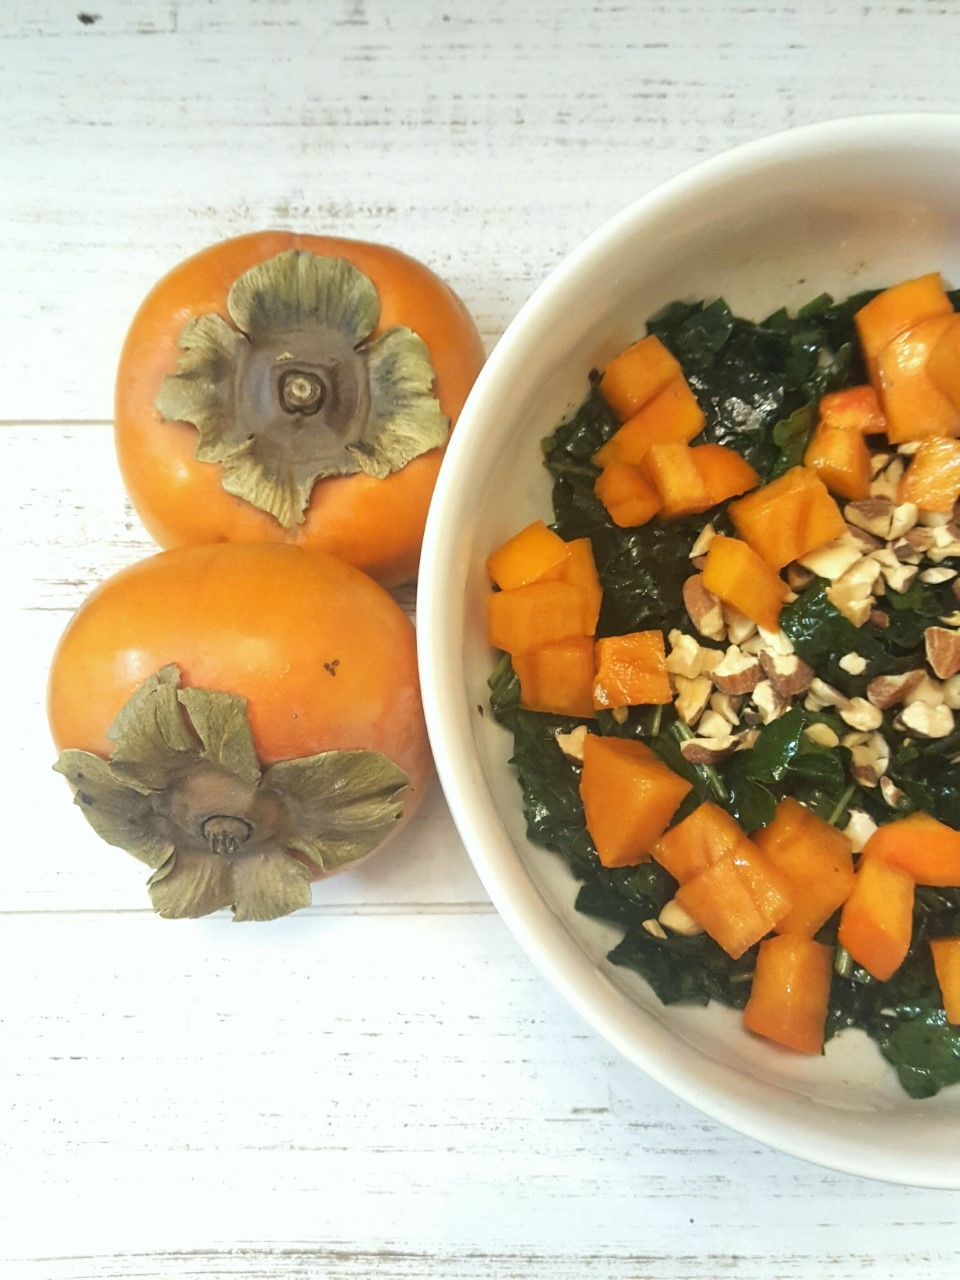 Kale Persimmon Salad with Black Garlic Dressing